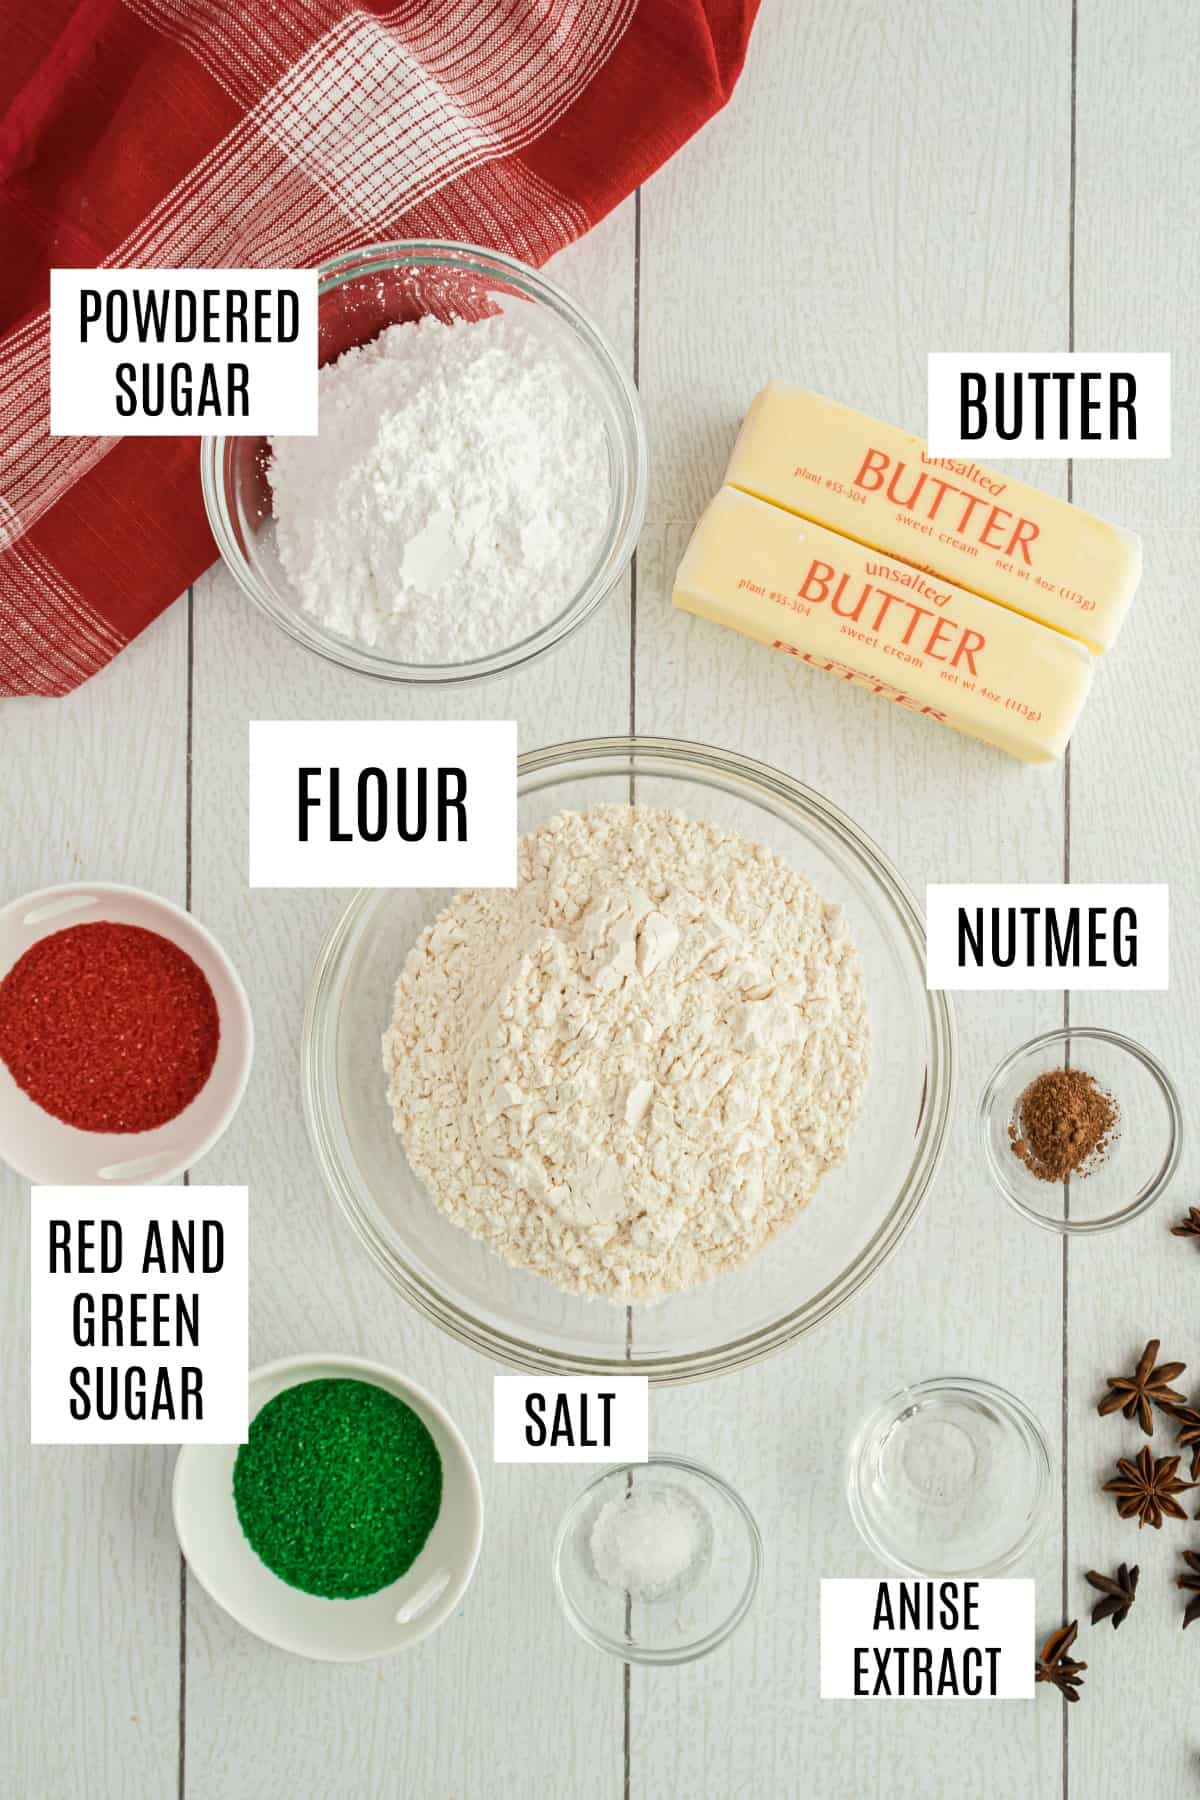 Ingredients needed to make jingles cookies including anise extract.